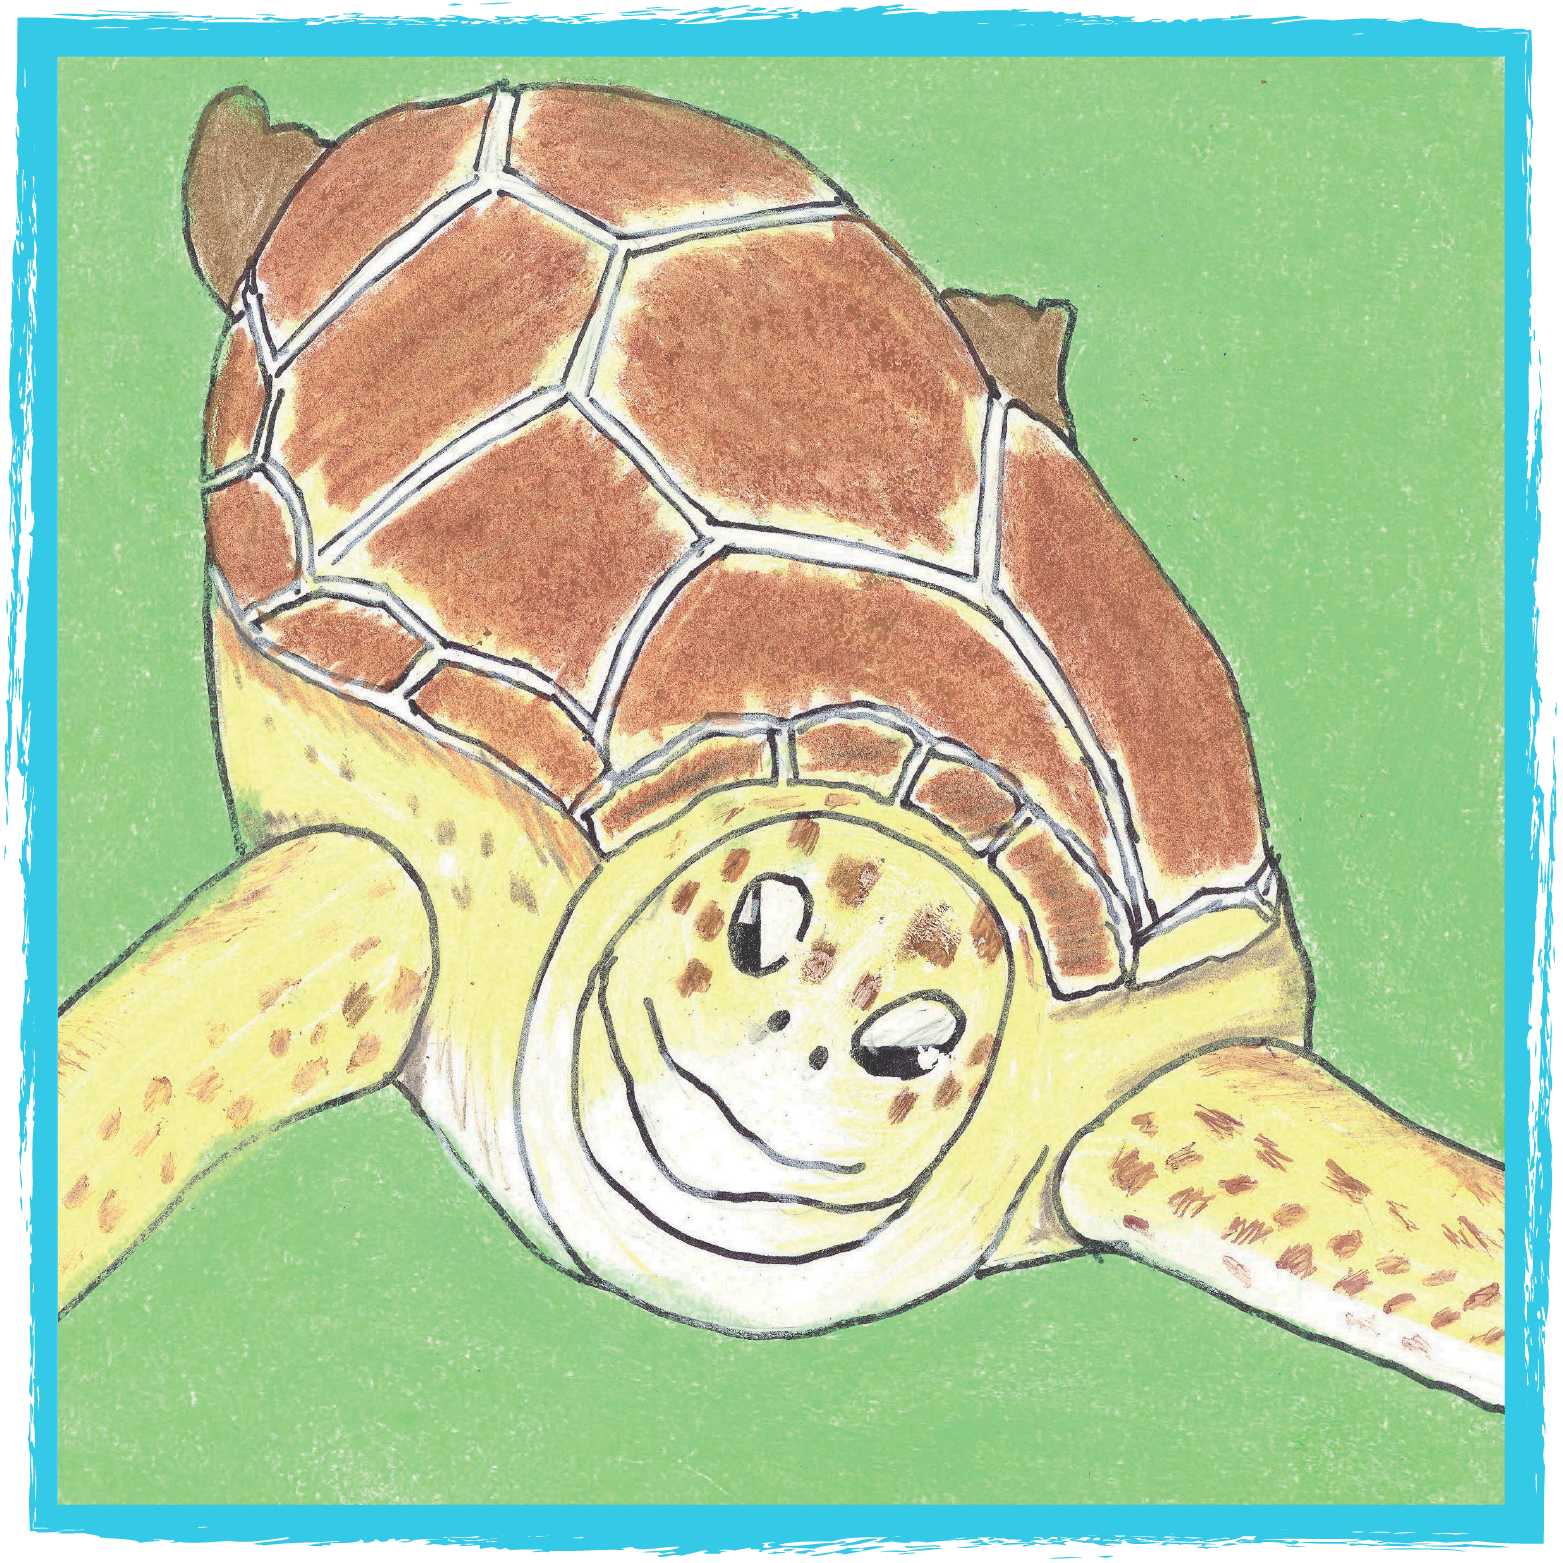 Sea Turtle, Inc. - True stories about rescued turtles at Sea Turtle, Inc., South Padre Island Texas and the people who care for them.